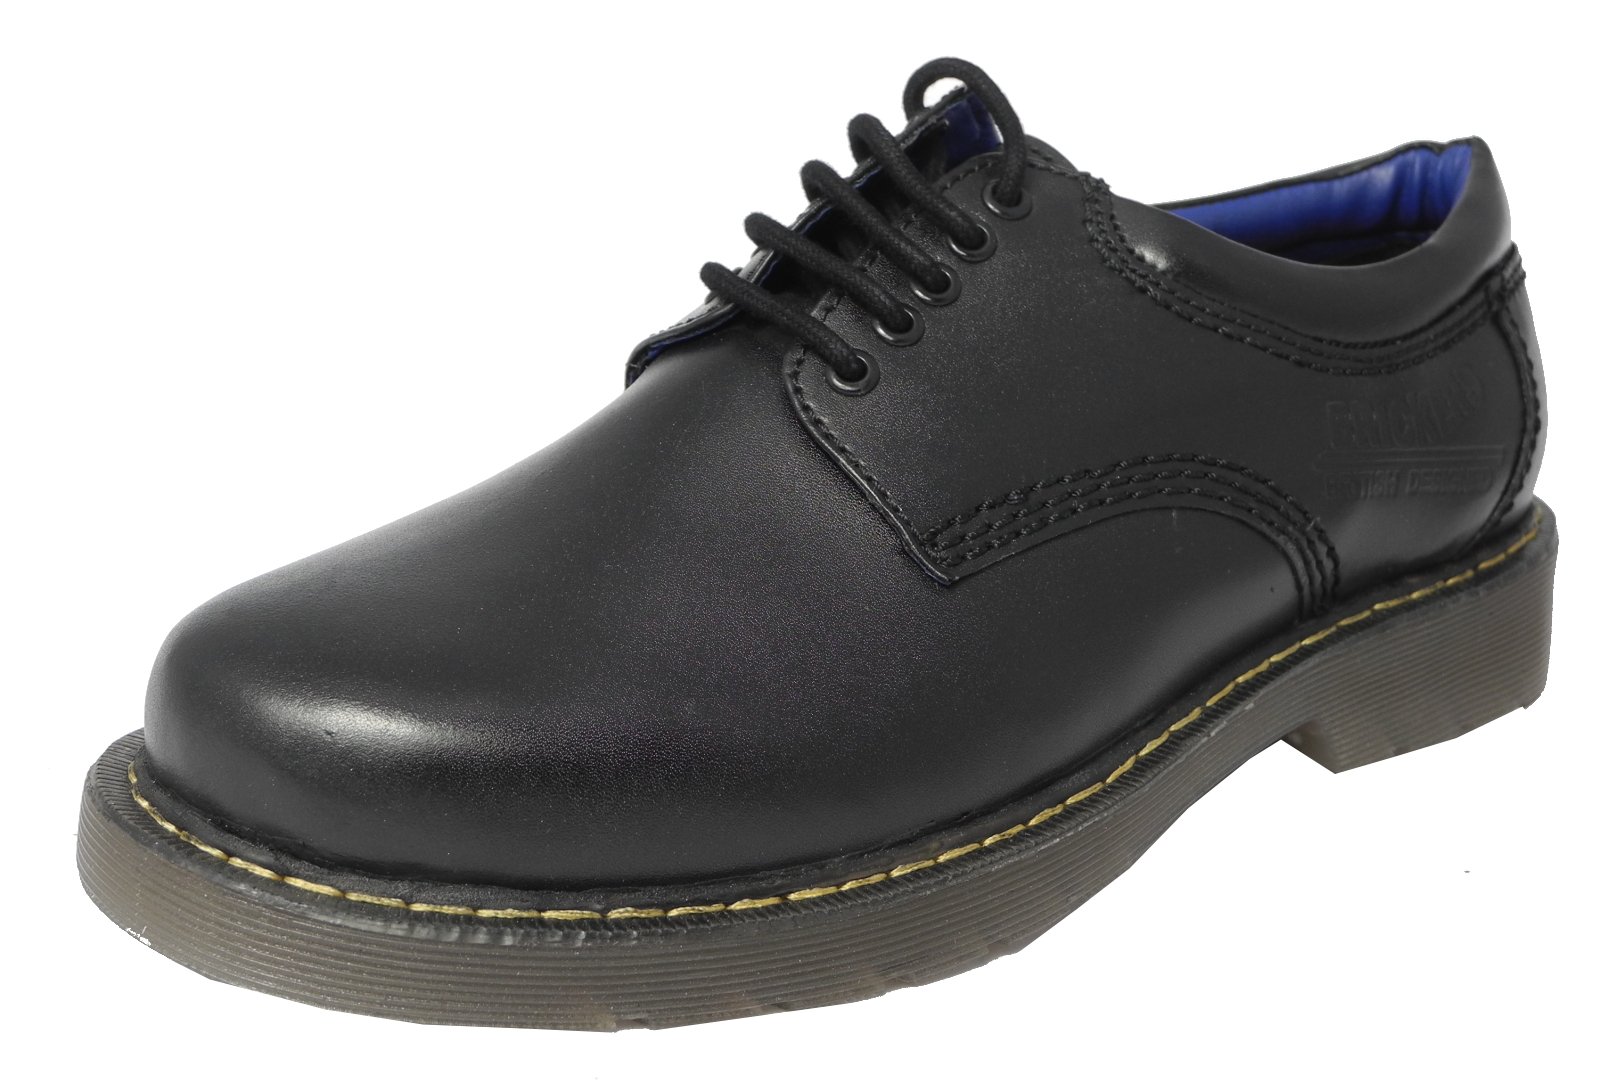 Black Work Shoes Wide Fit